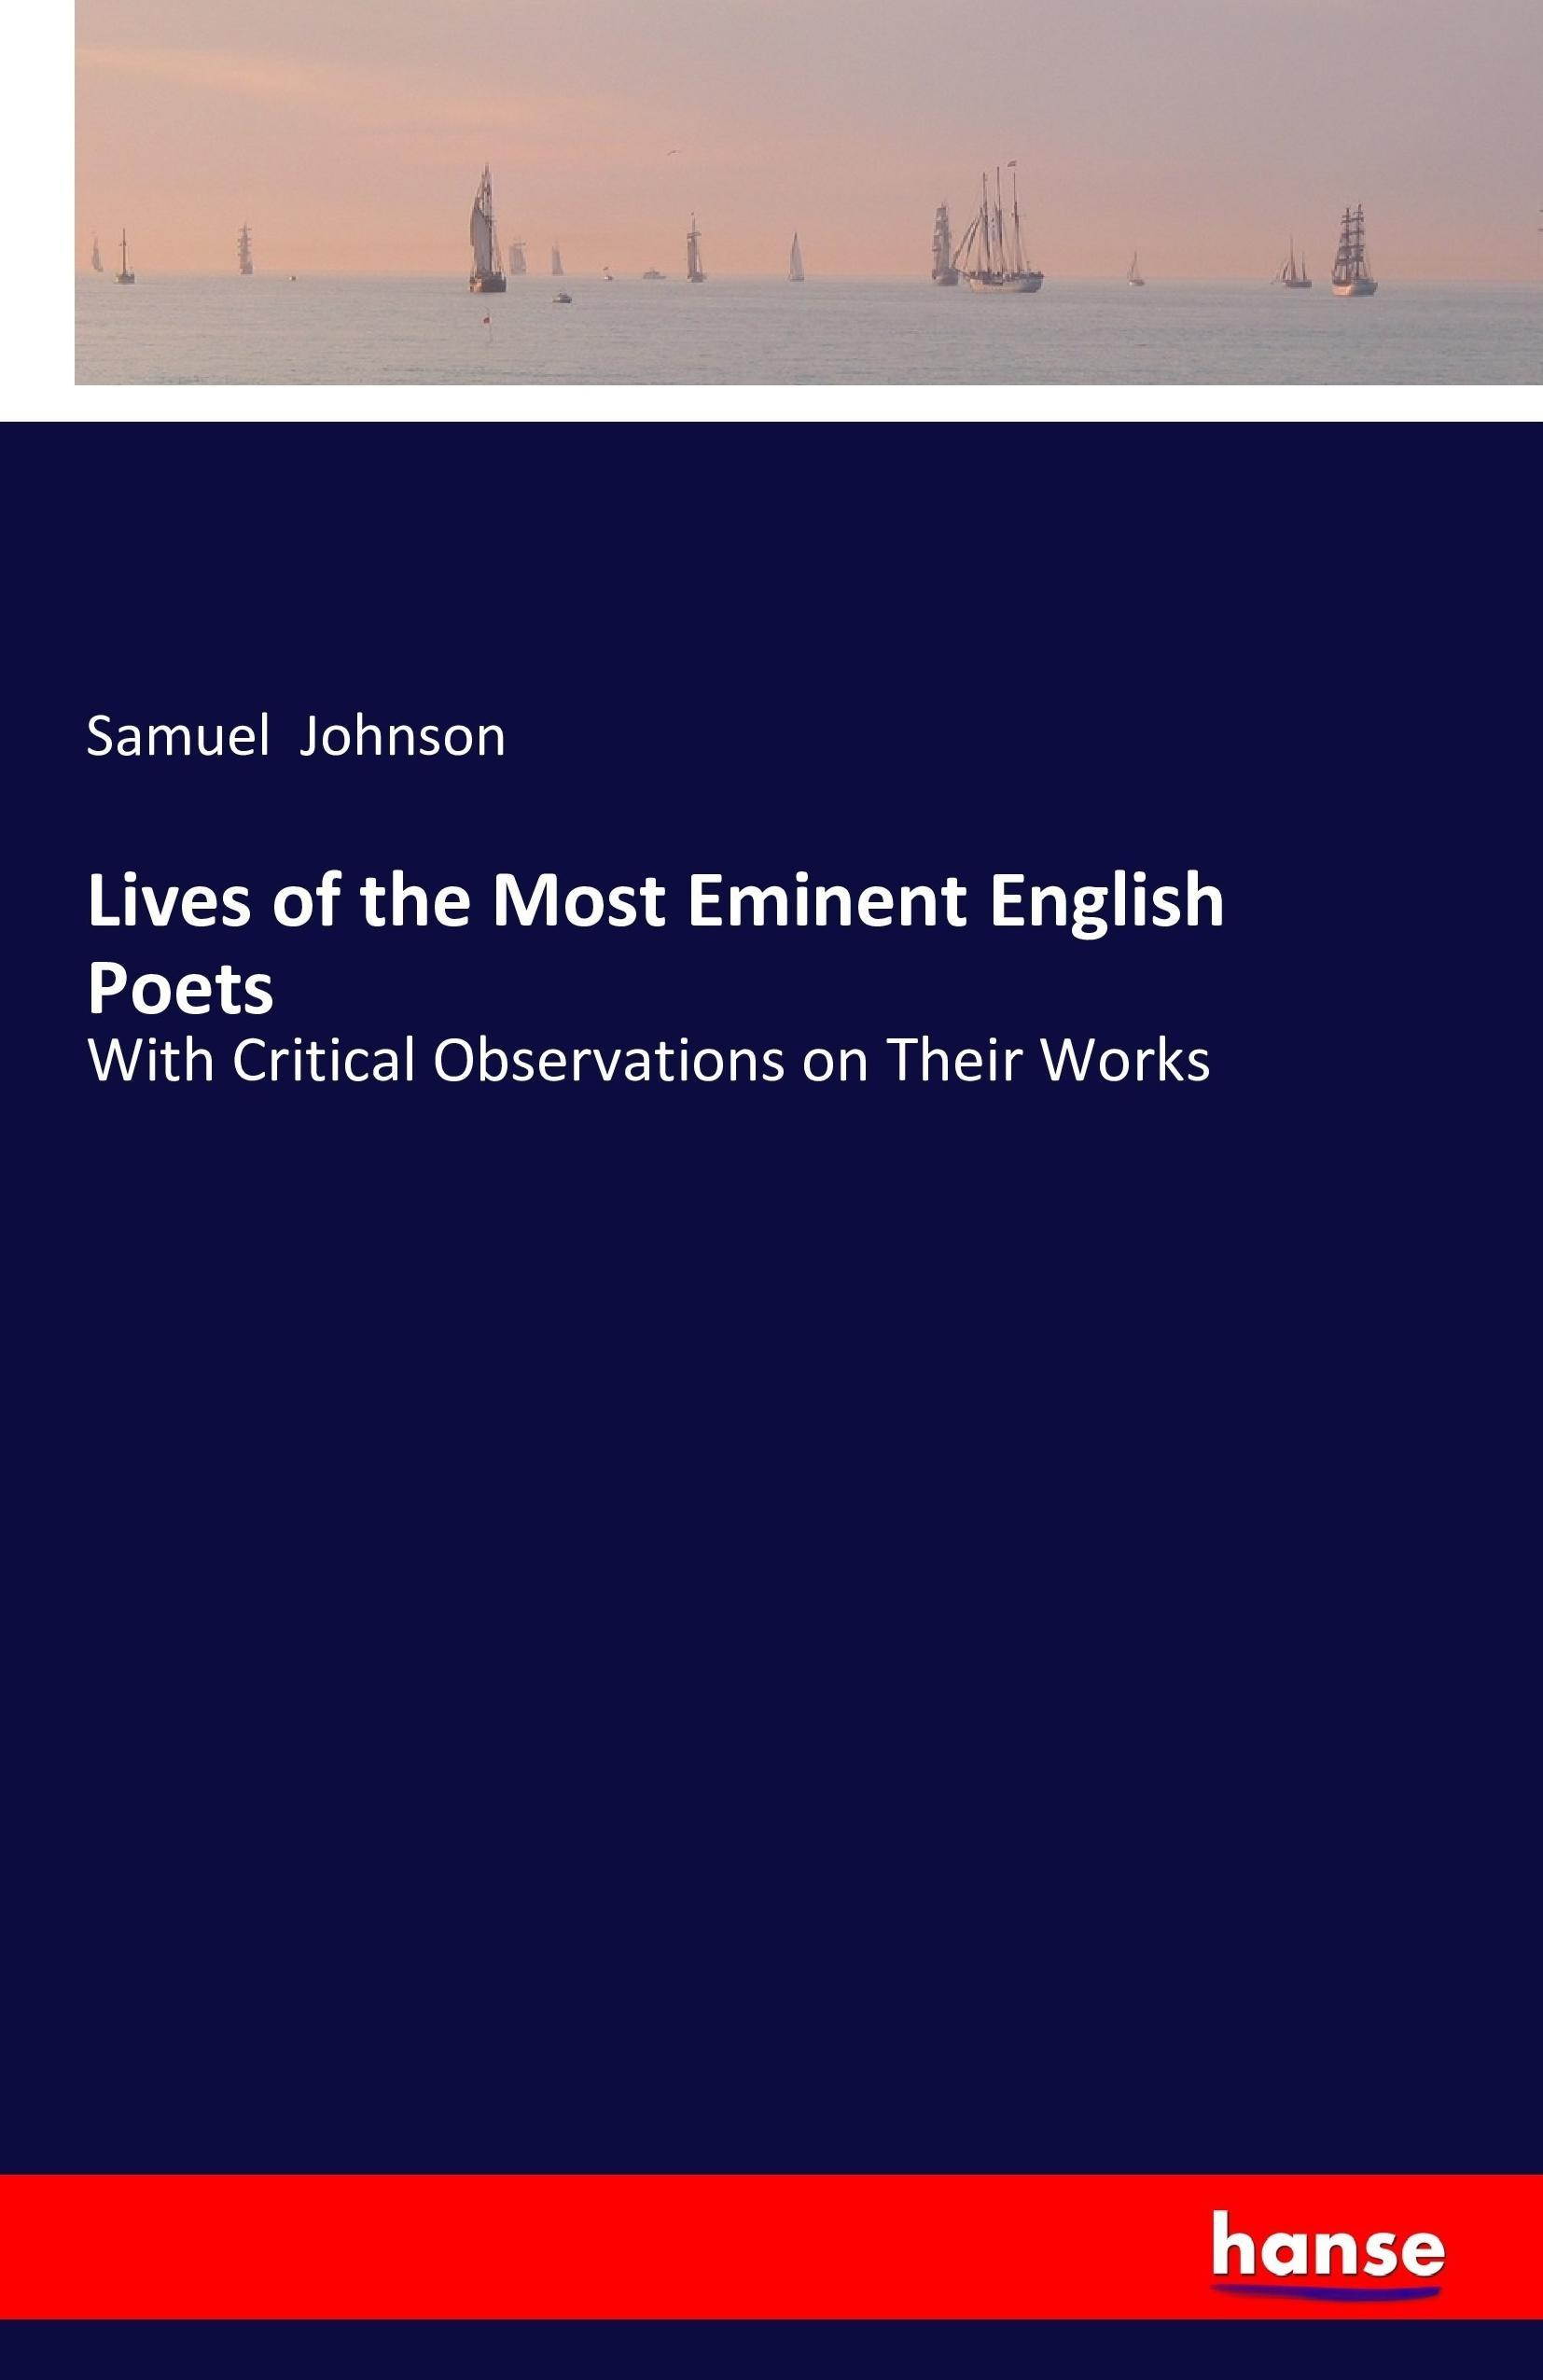 Lives of the Most Eminent English Poets   Samuel Johnson    9783741181788